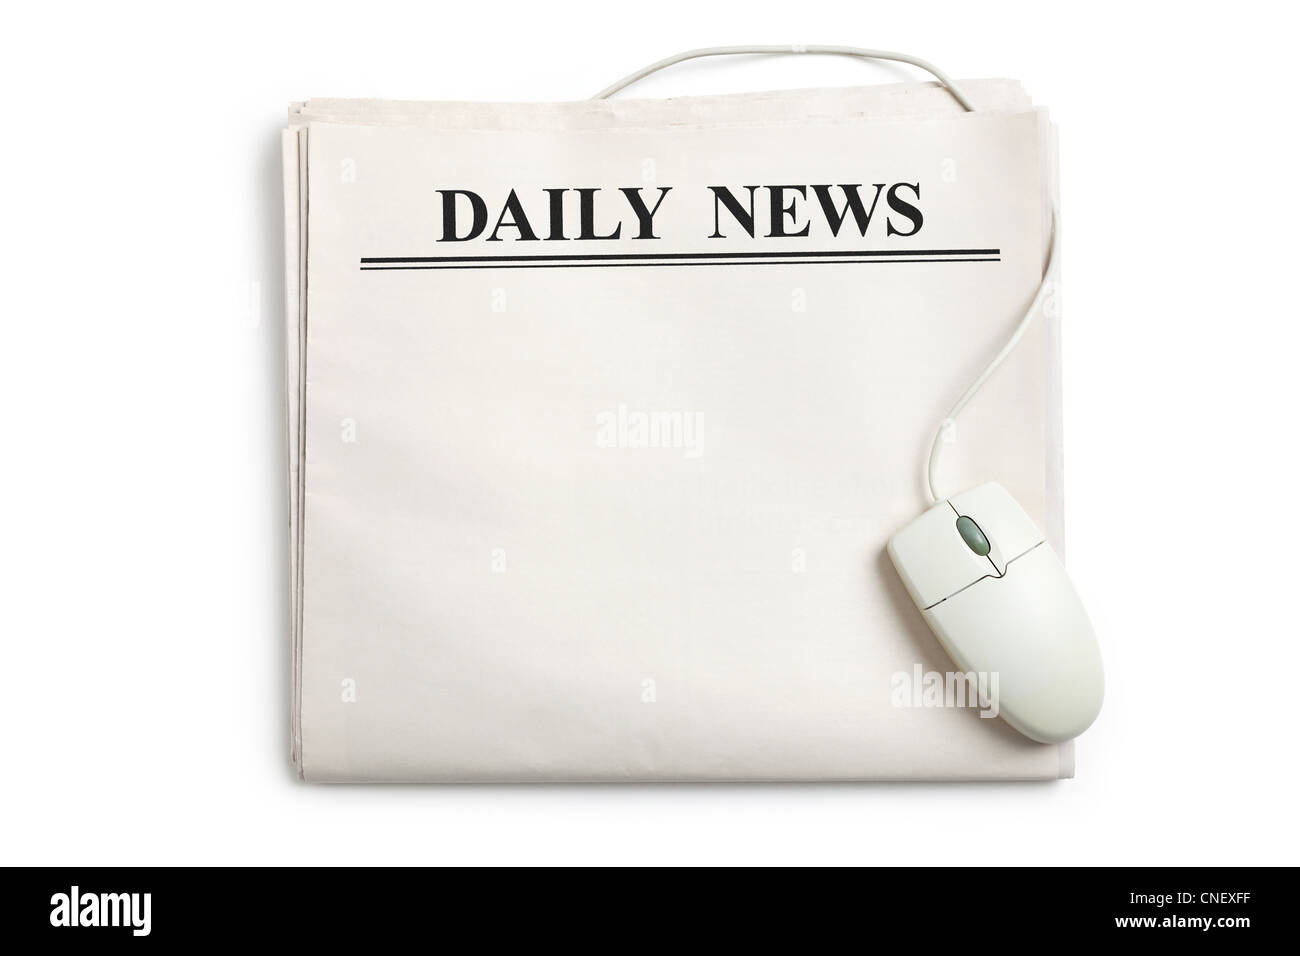 Computer mouse and Newspaper with white background - Stock Image